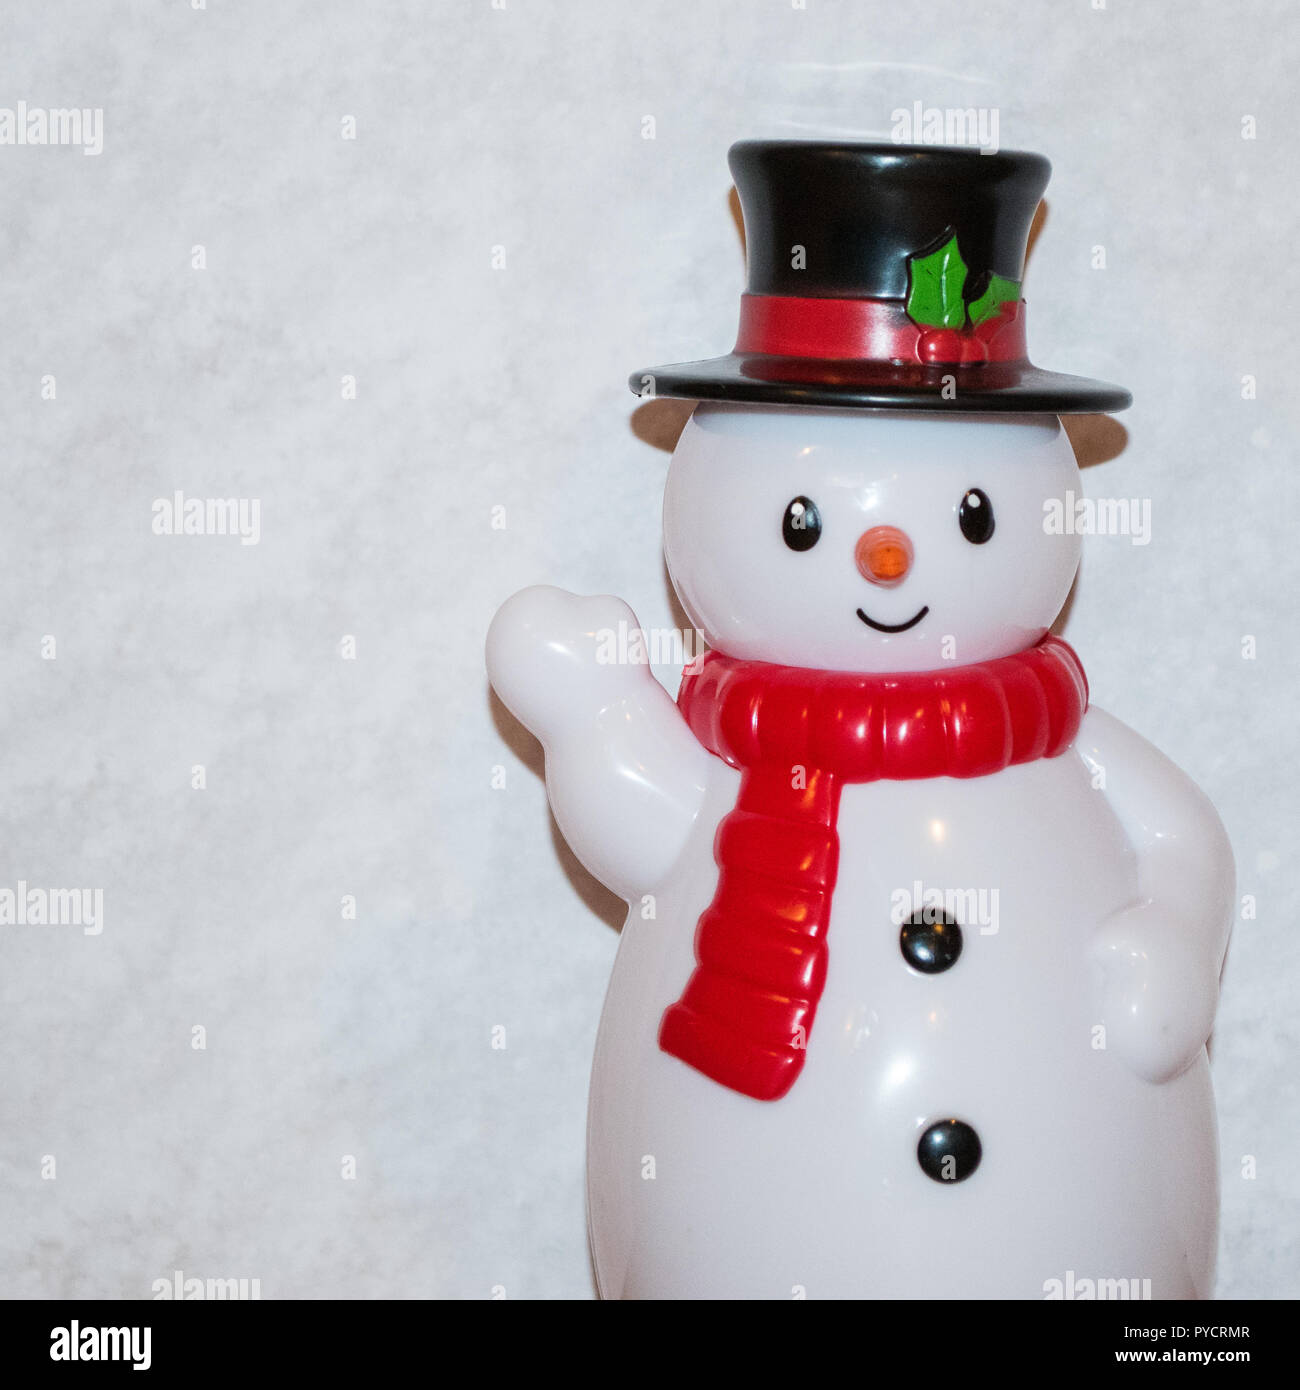 Toy snowman waving with white scarf and black top hat with red sash. There is a white background. Stock Photo